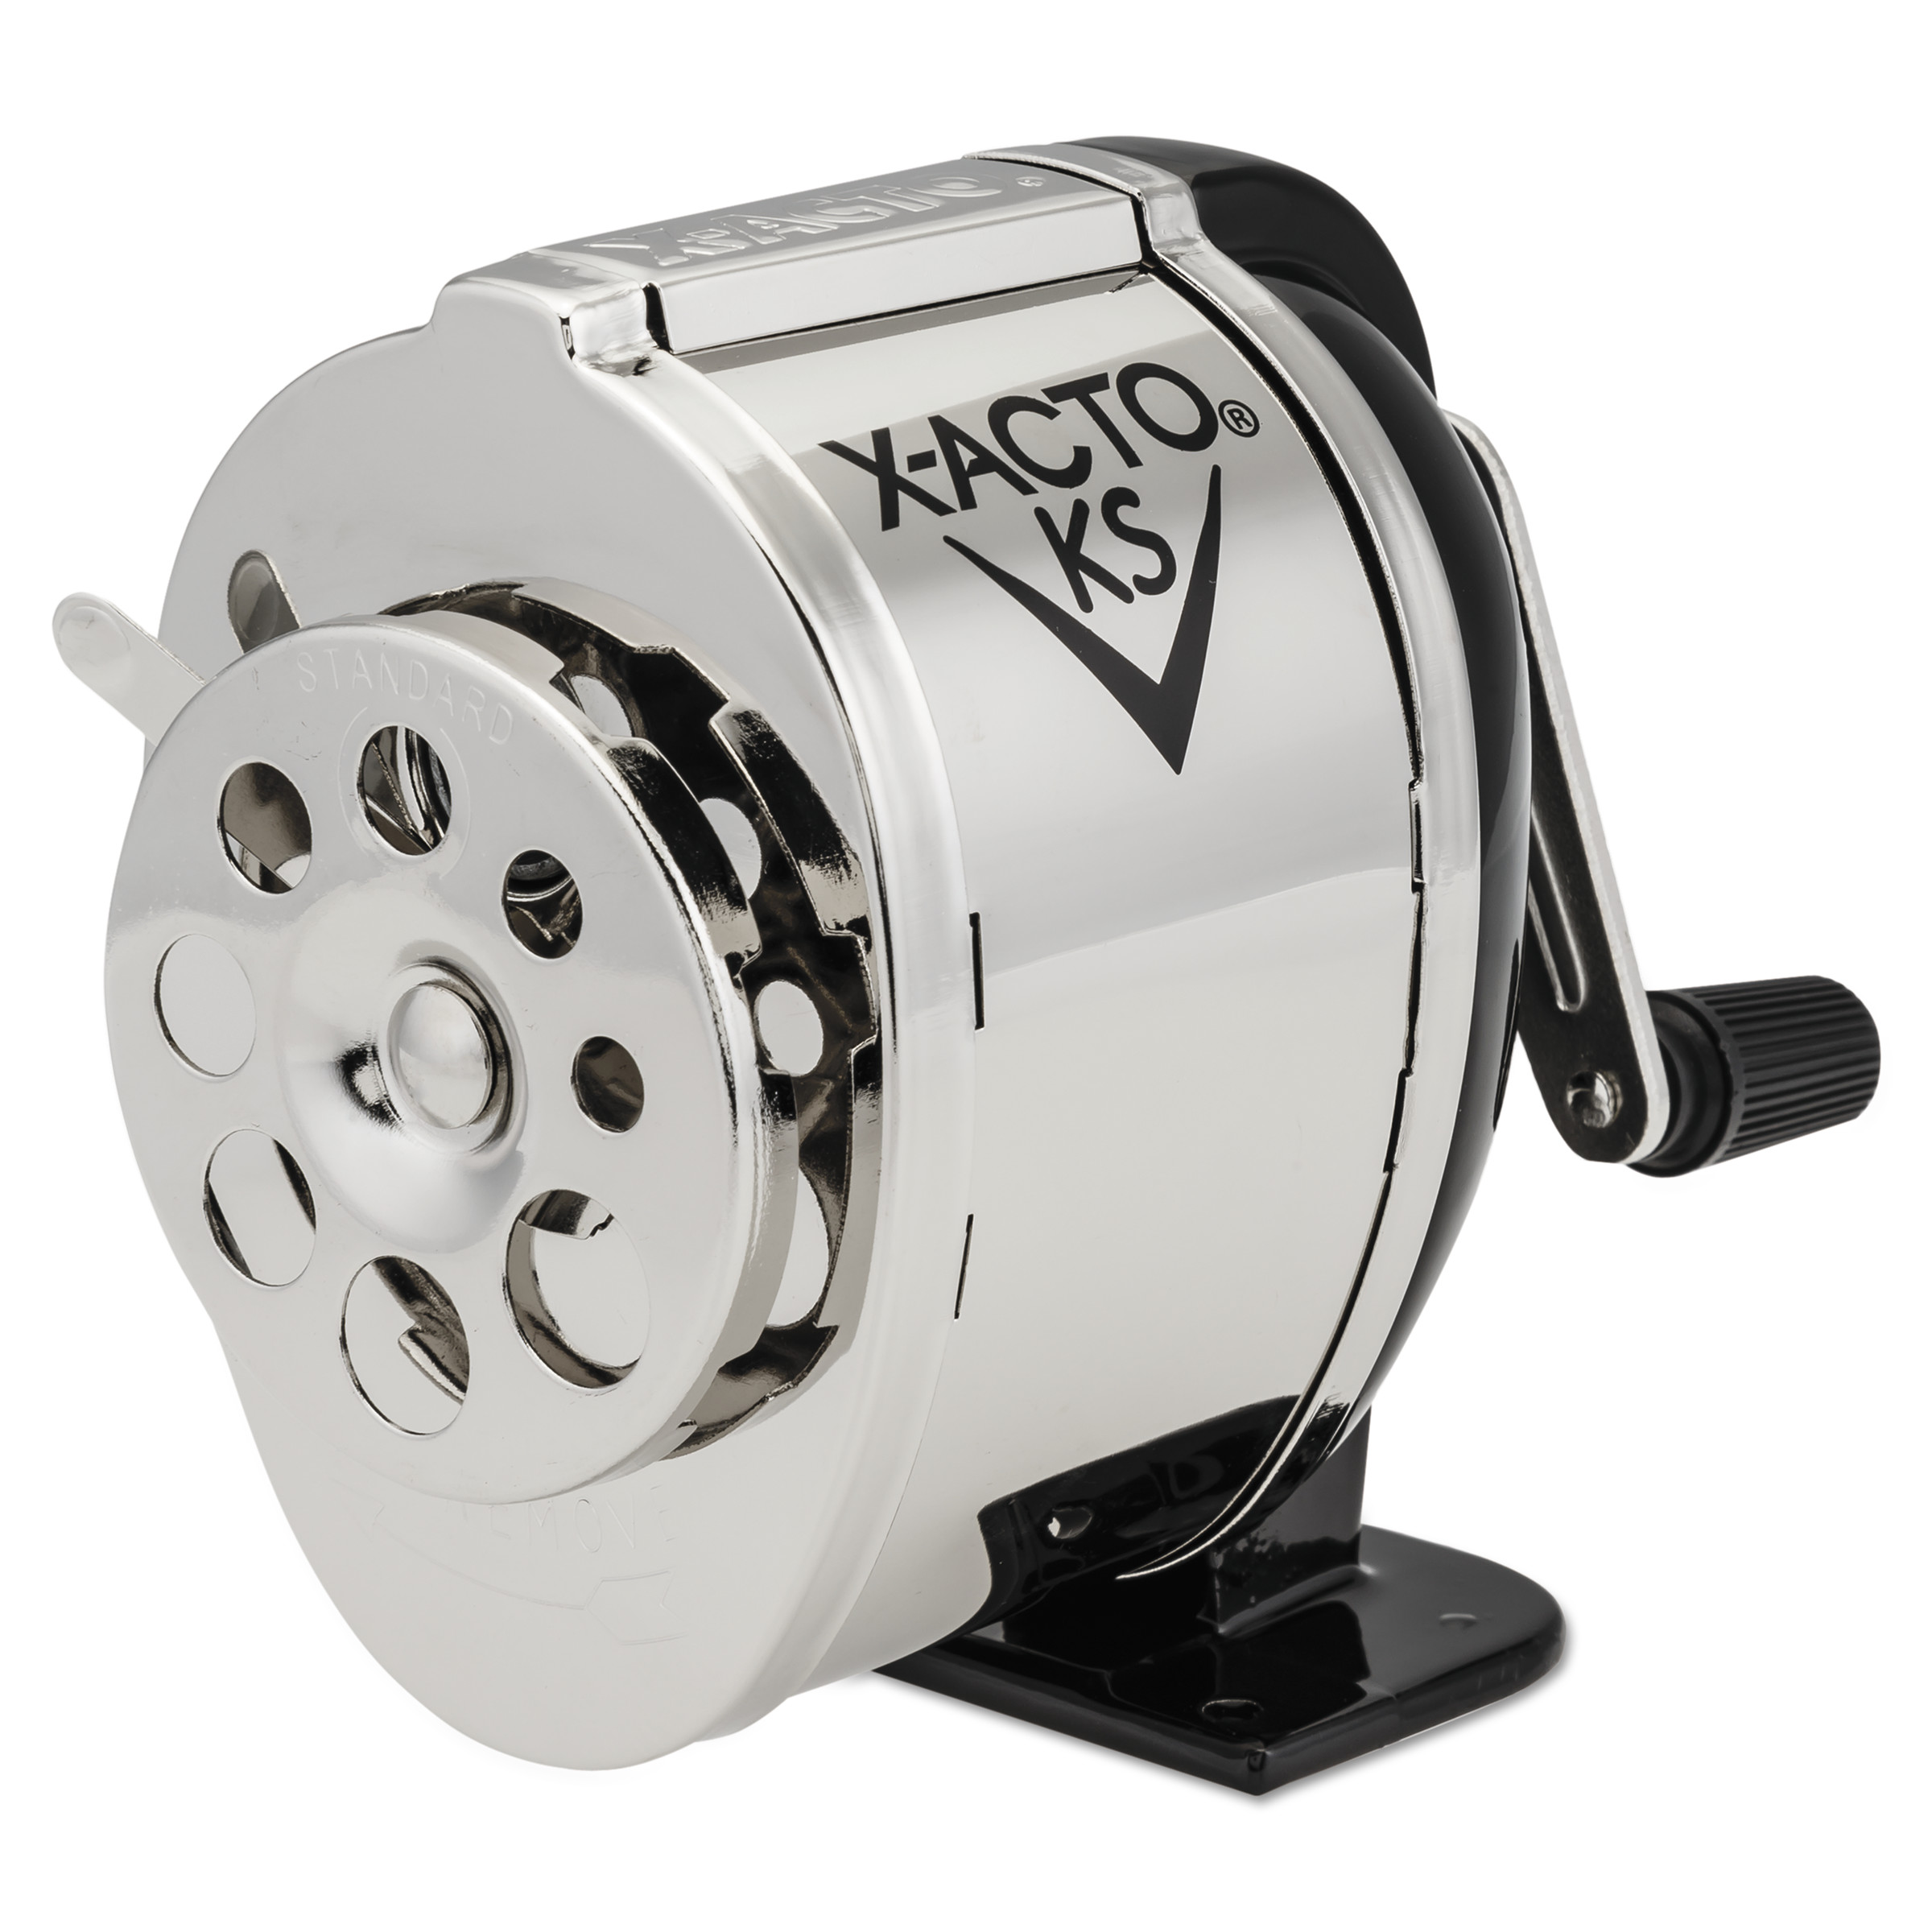 X-ACTO KS Manual Classroom Pencil Sharpener, Counter/Wall-Mount, Black/Nickel-Plated, 1-Count